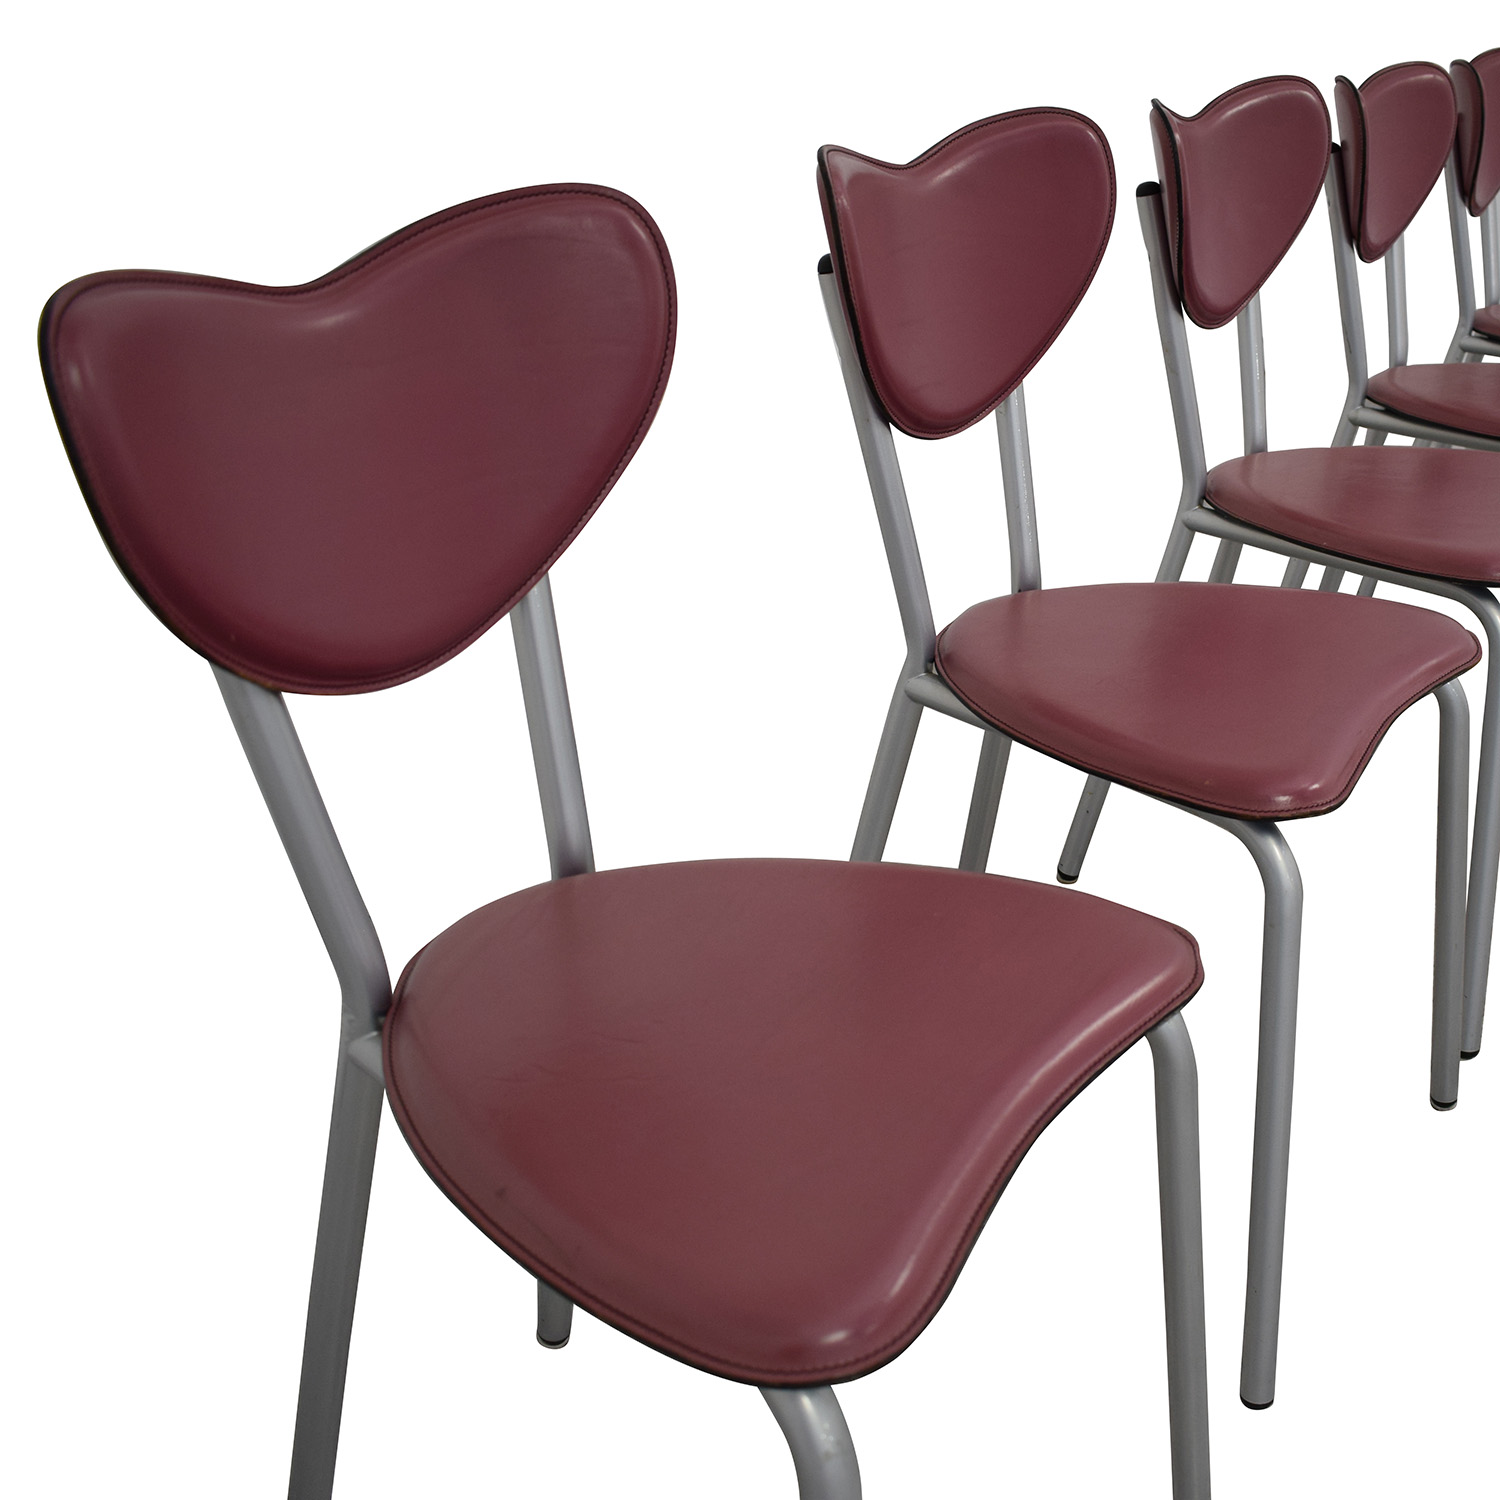 shop Pellizzoni Modern Dining Chairs Pellizzoni Dining Chairs